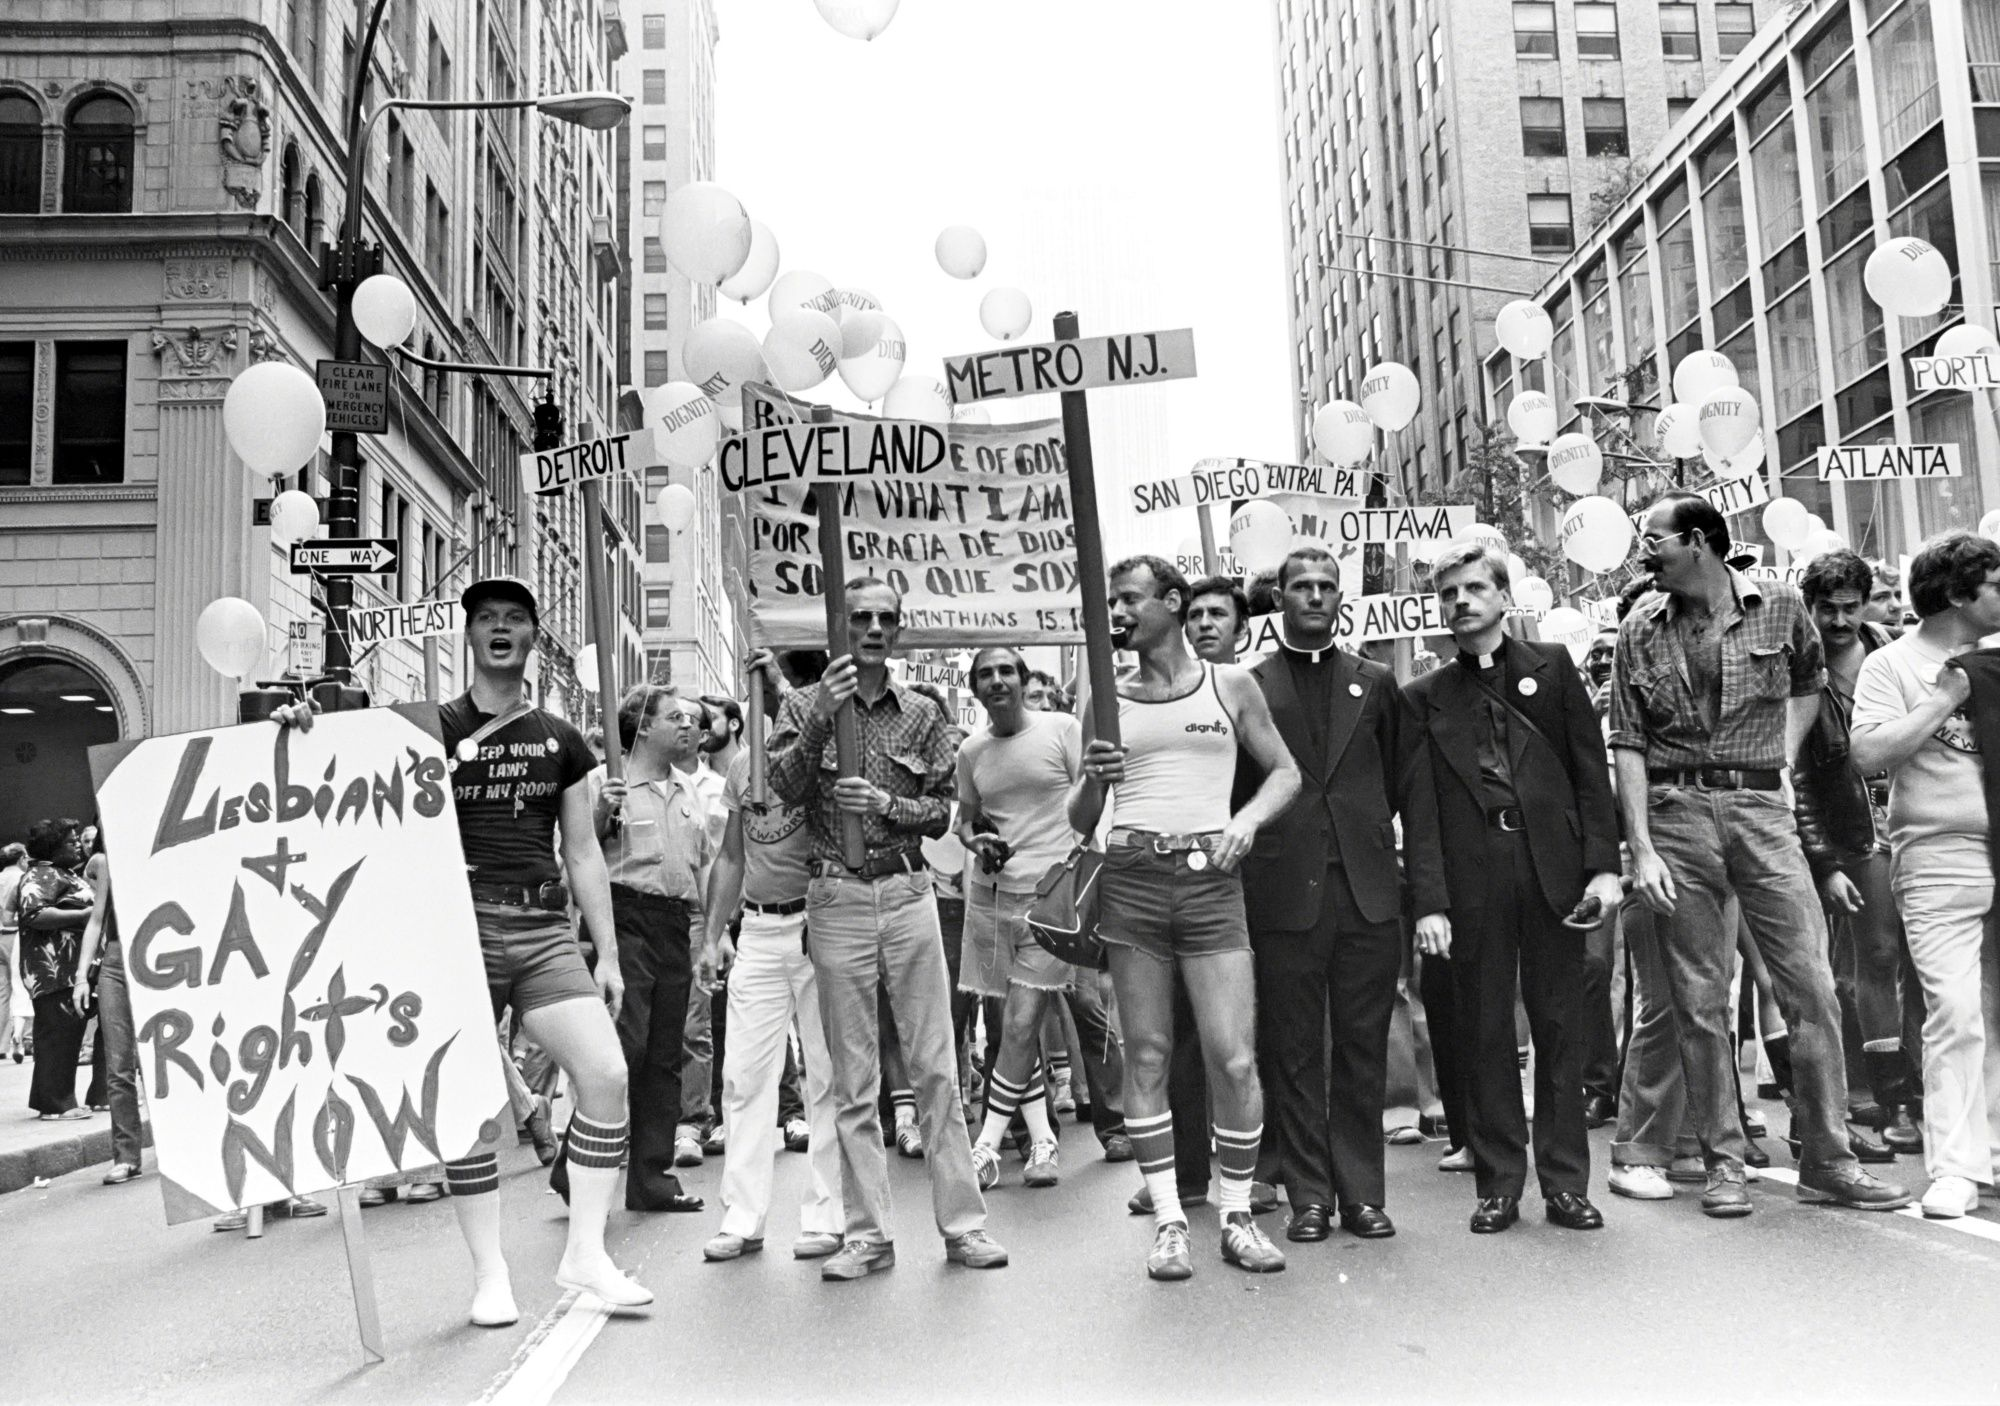 NEW YORK, NY - CIRCA 1980: Gay Pride demonstration circa 1980 in New York City. (Photo by Arpadi/IMAGES/Getty Images)